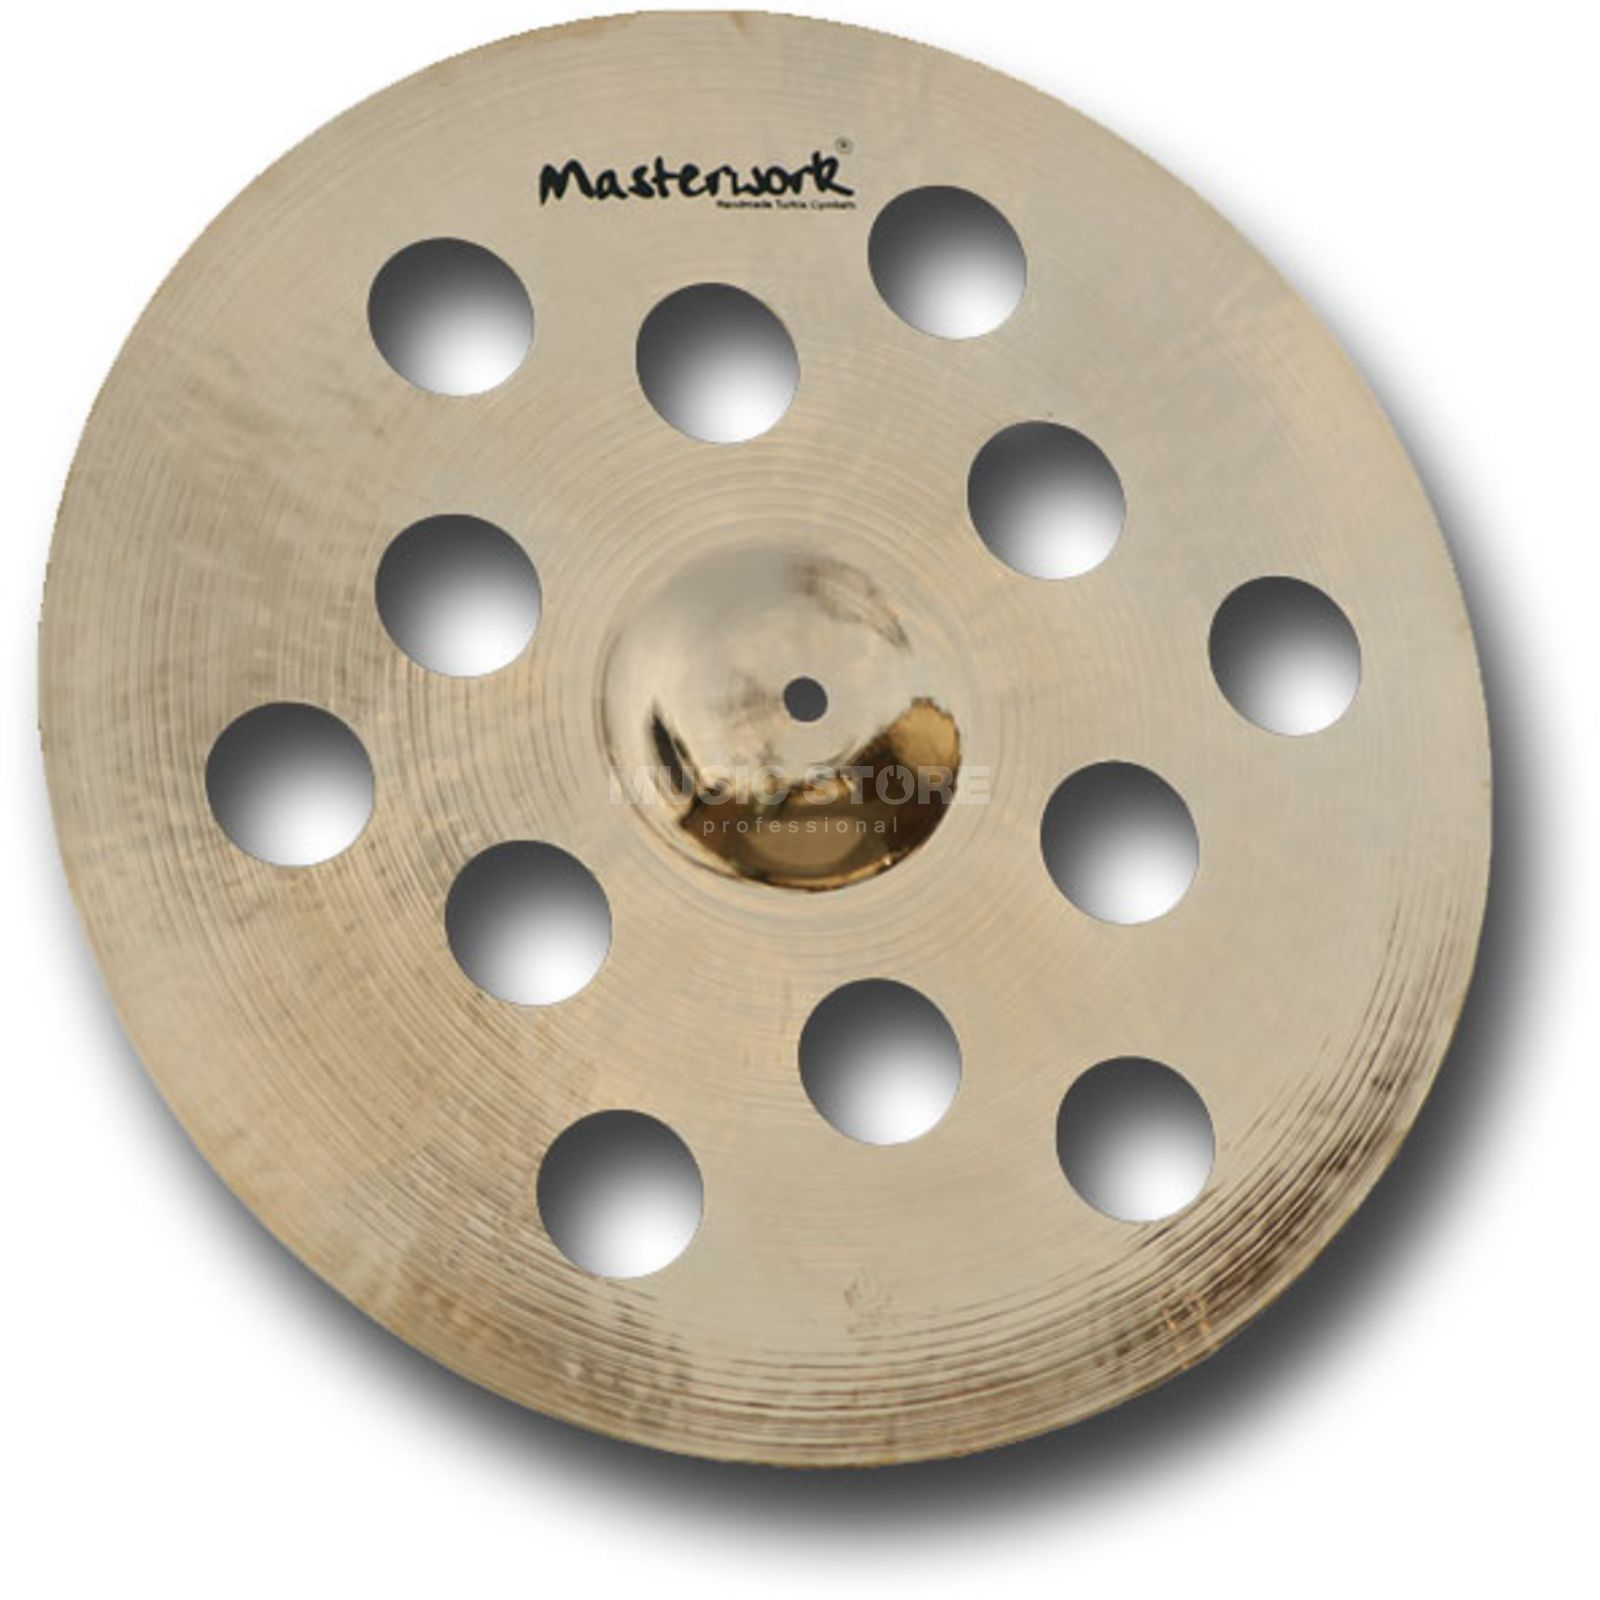 "Masterwork Resonant FX Crash 17"", Brilliant Finish Produktbillede"